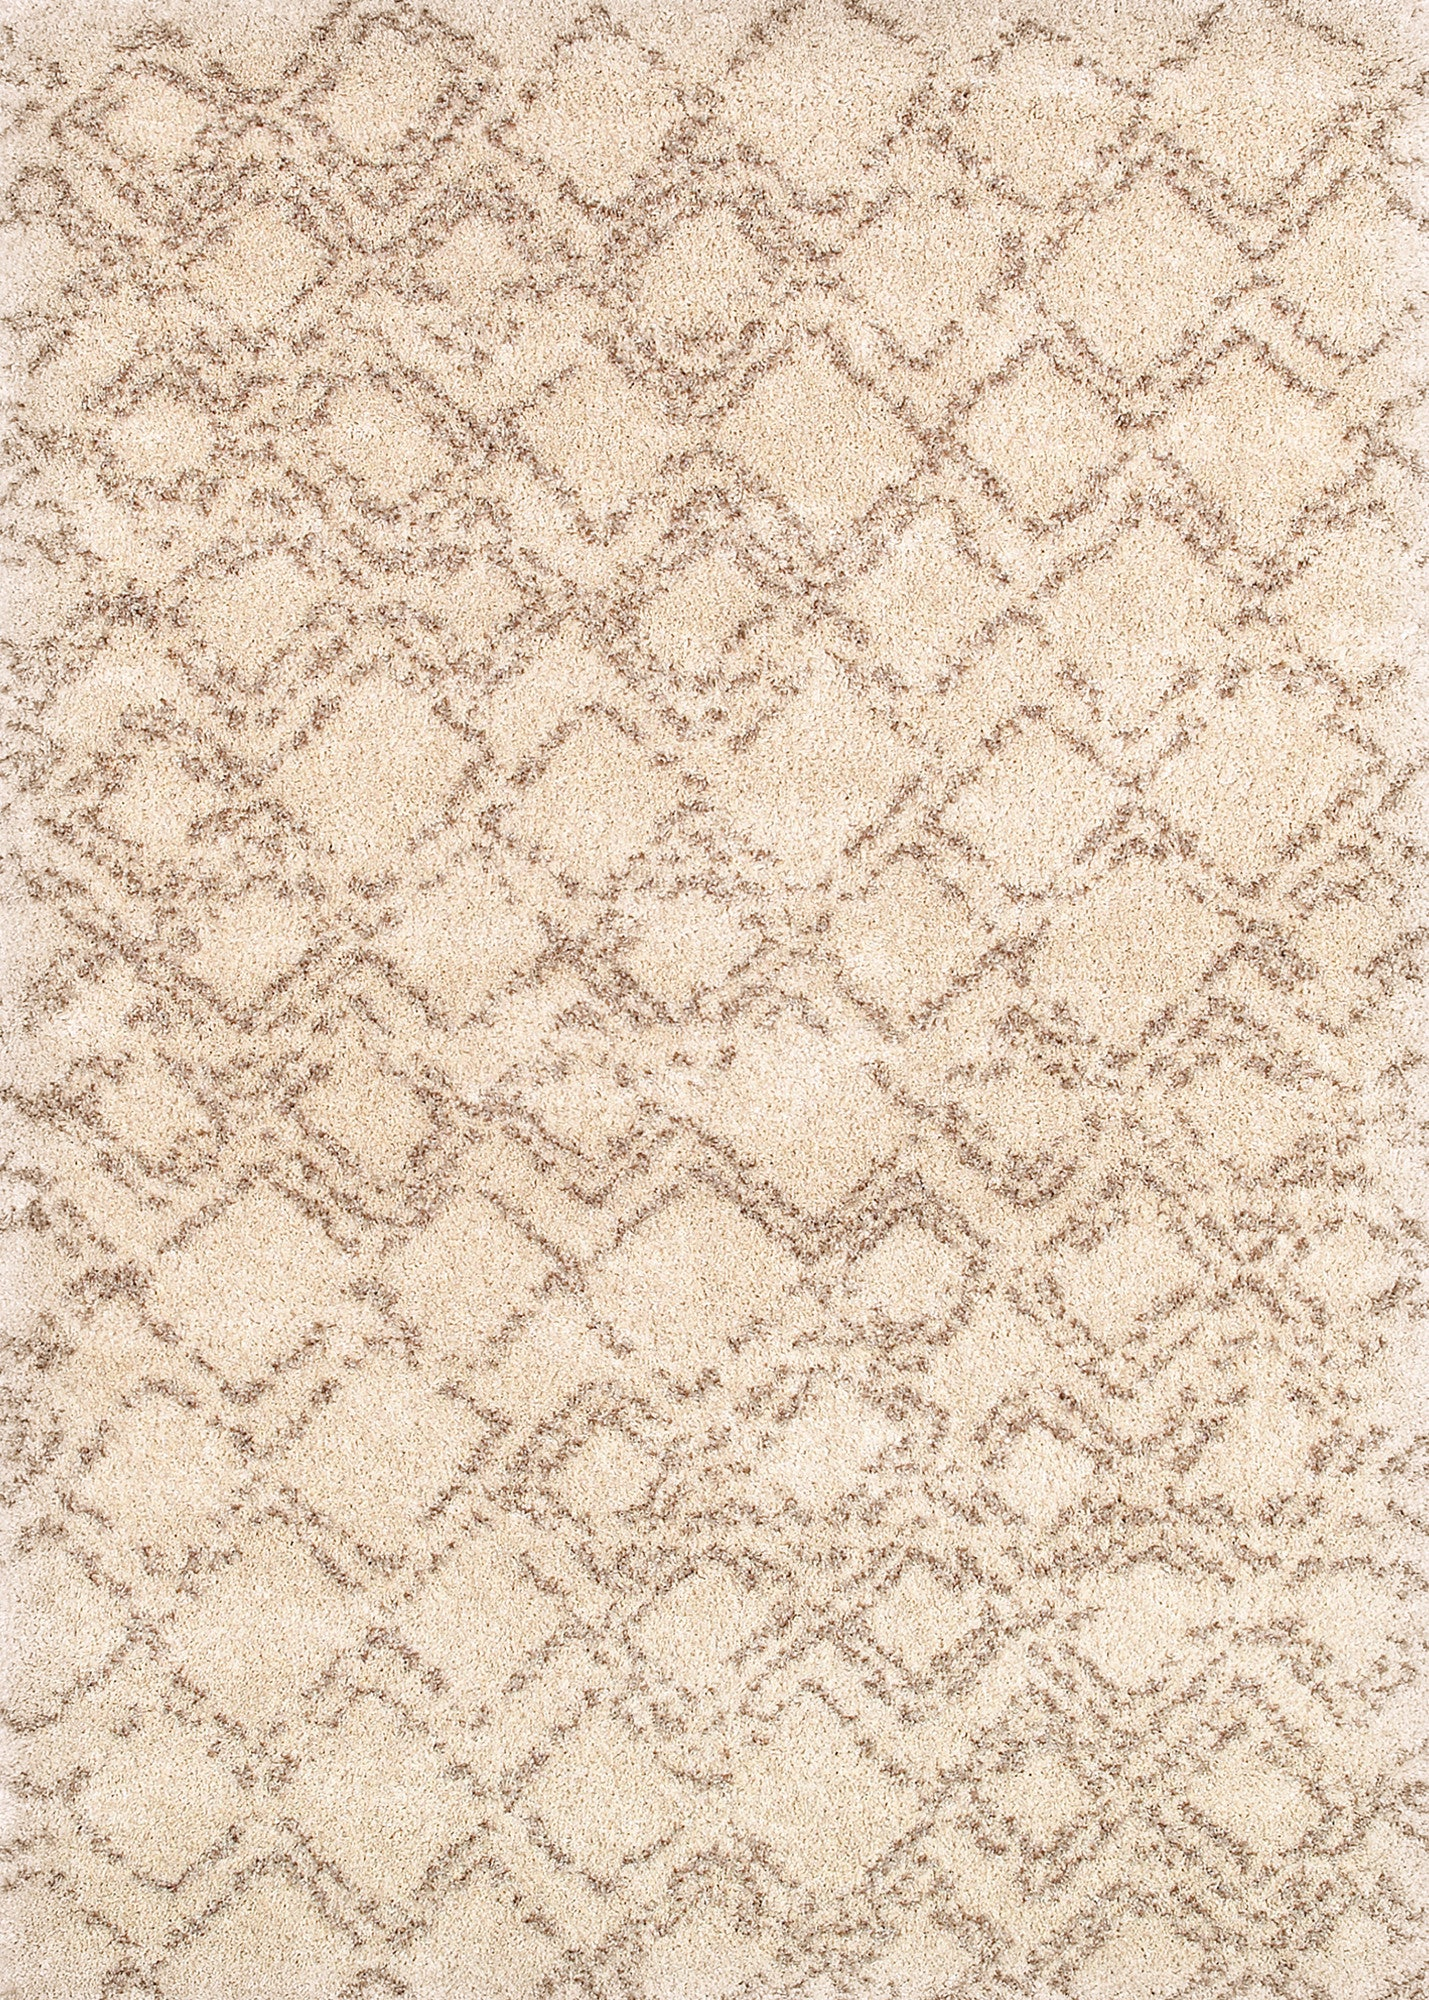 Couristan Bromley Pinnacle Ivory/Camel Area Rug